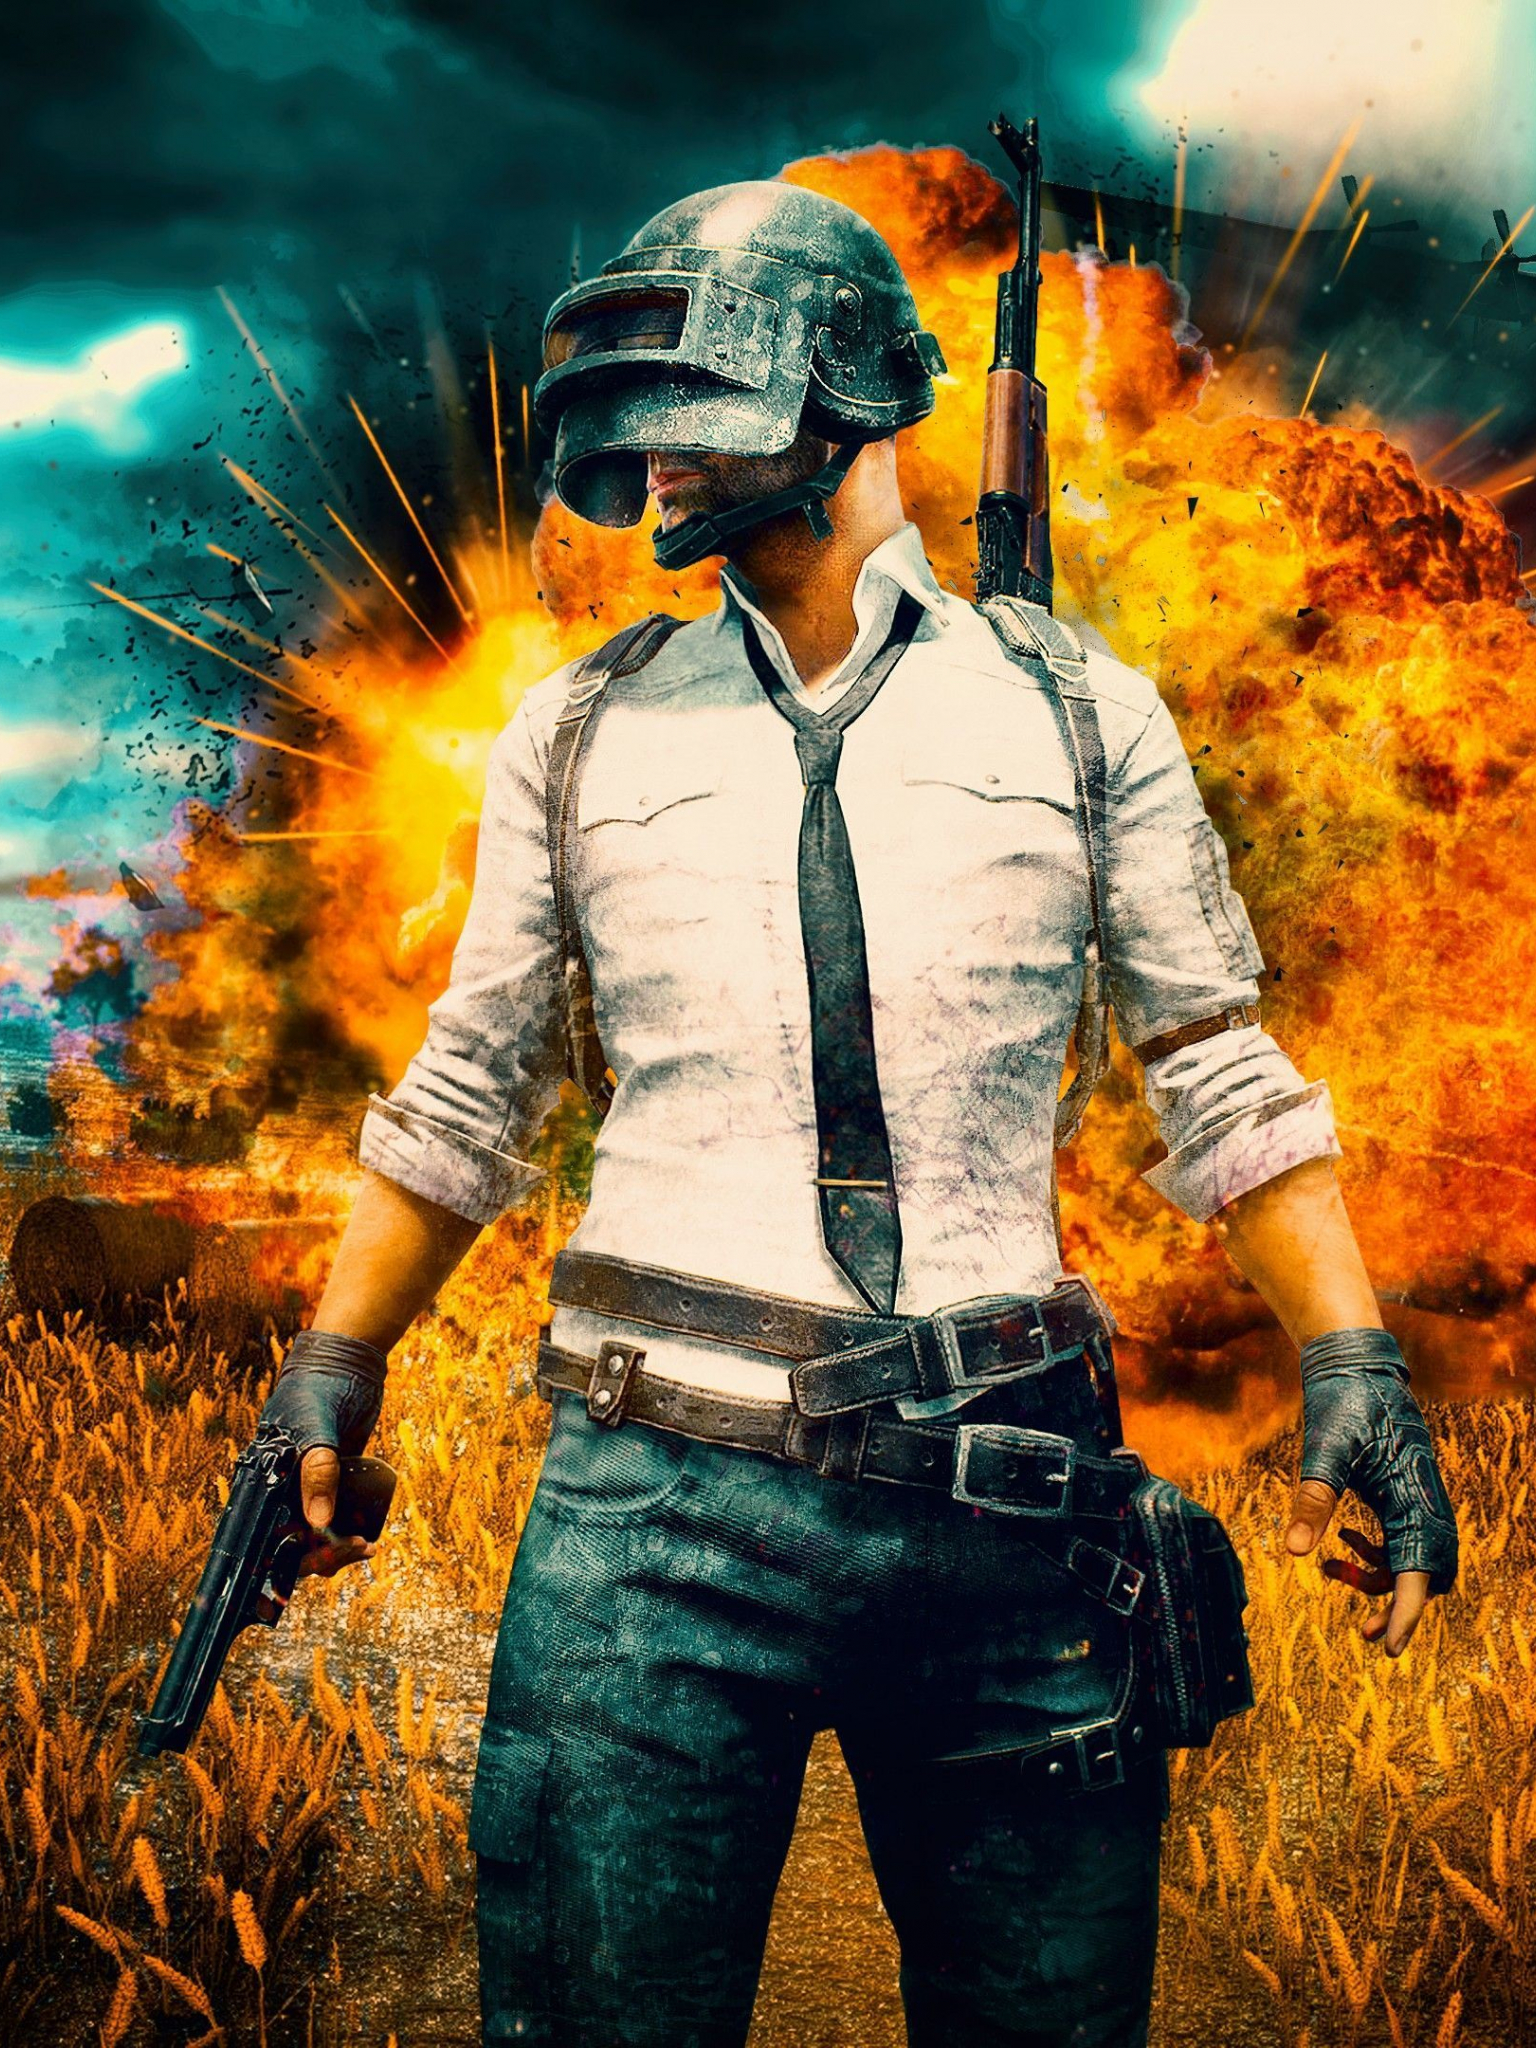 Download PUBG 4K Wallpapers iPhone Android and Desktop The ...